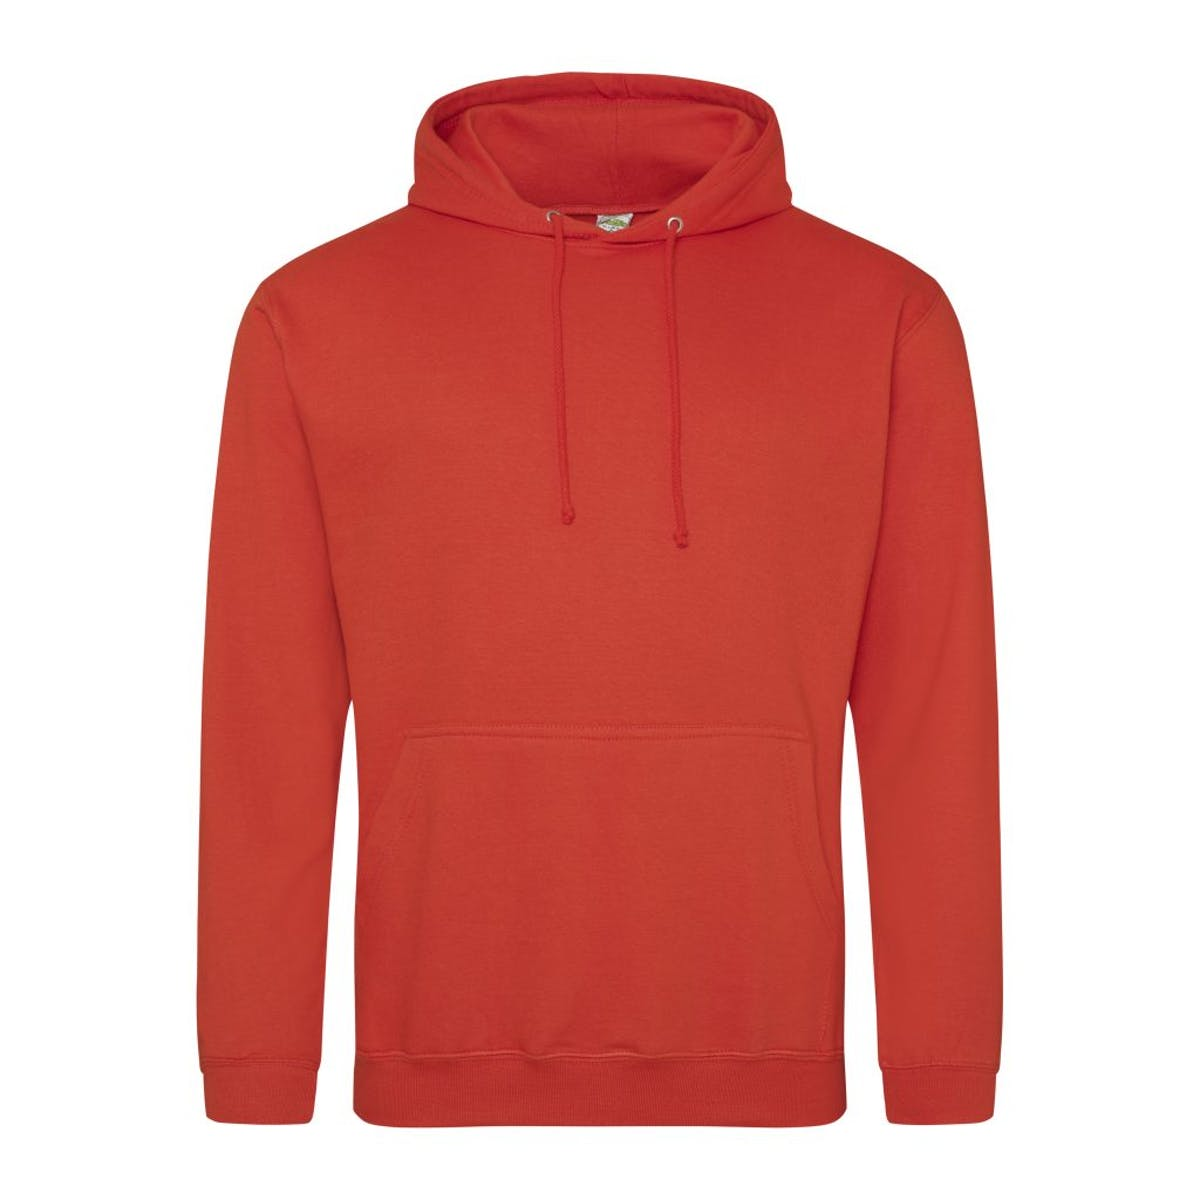 sunset orange college hoodies